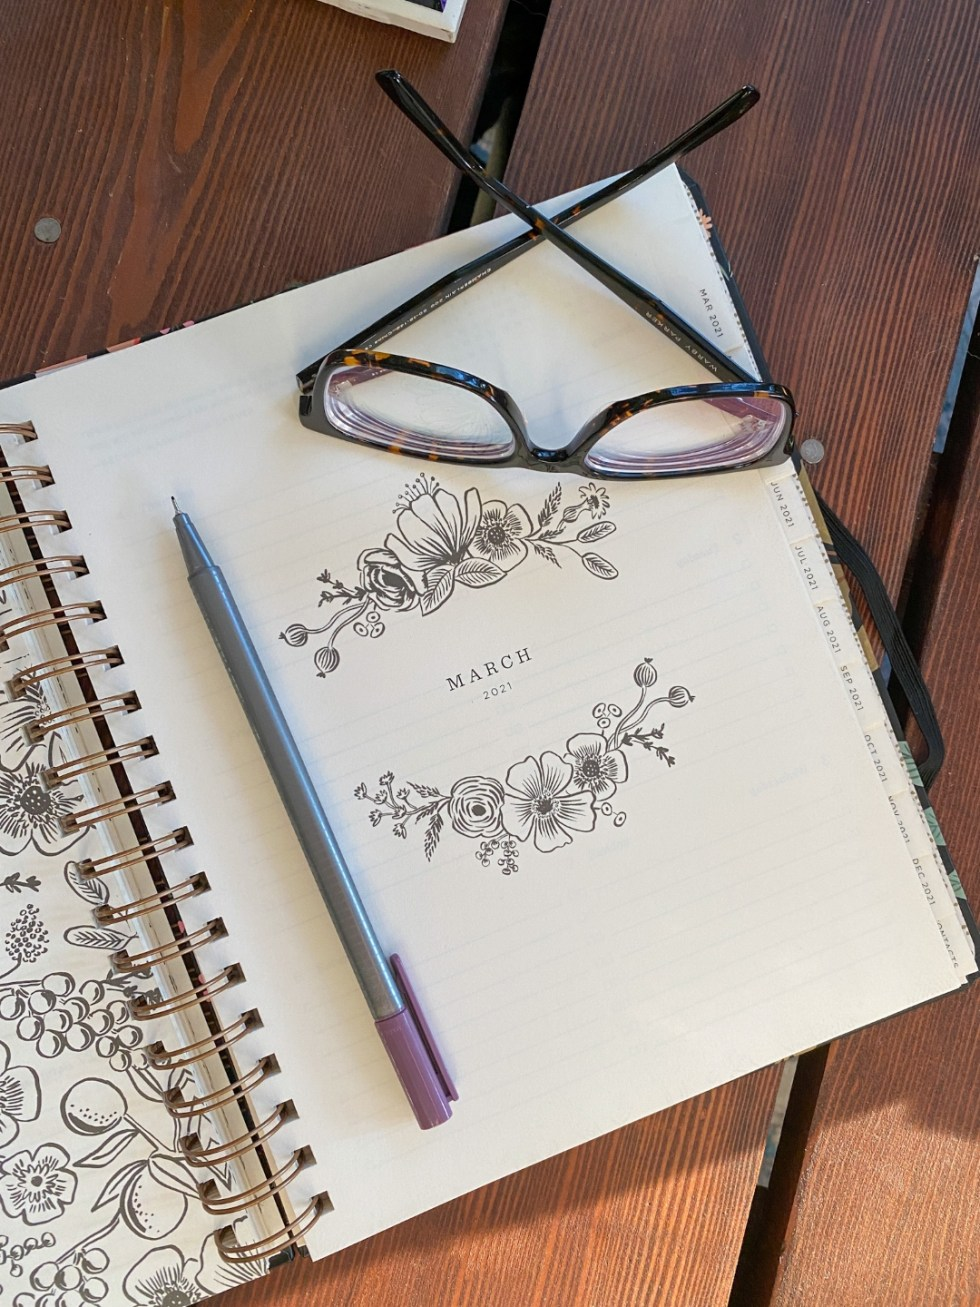 See With Style: Warby Parker Eye Glasses - I'm Fixin' To - @imfixintoblog |Warby Parker Eye Glasses by popular NC fashion blog, I'm Fixin' To: image of a pair of Warby Parker glasses resting on a opened notebook.